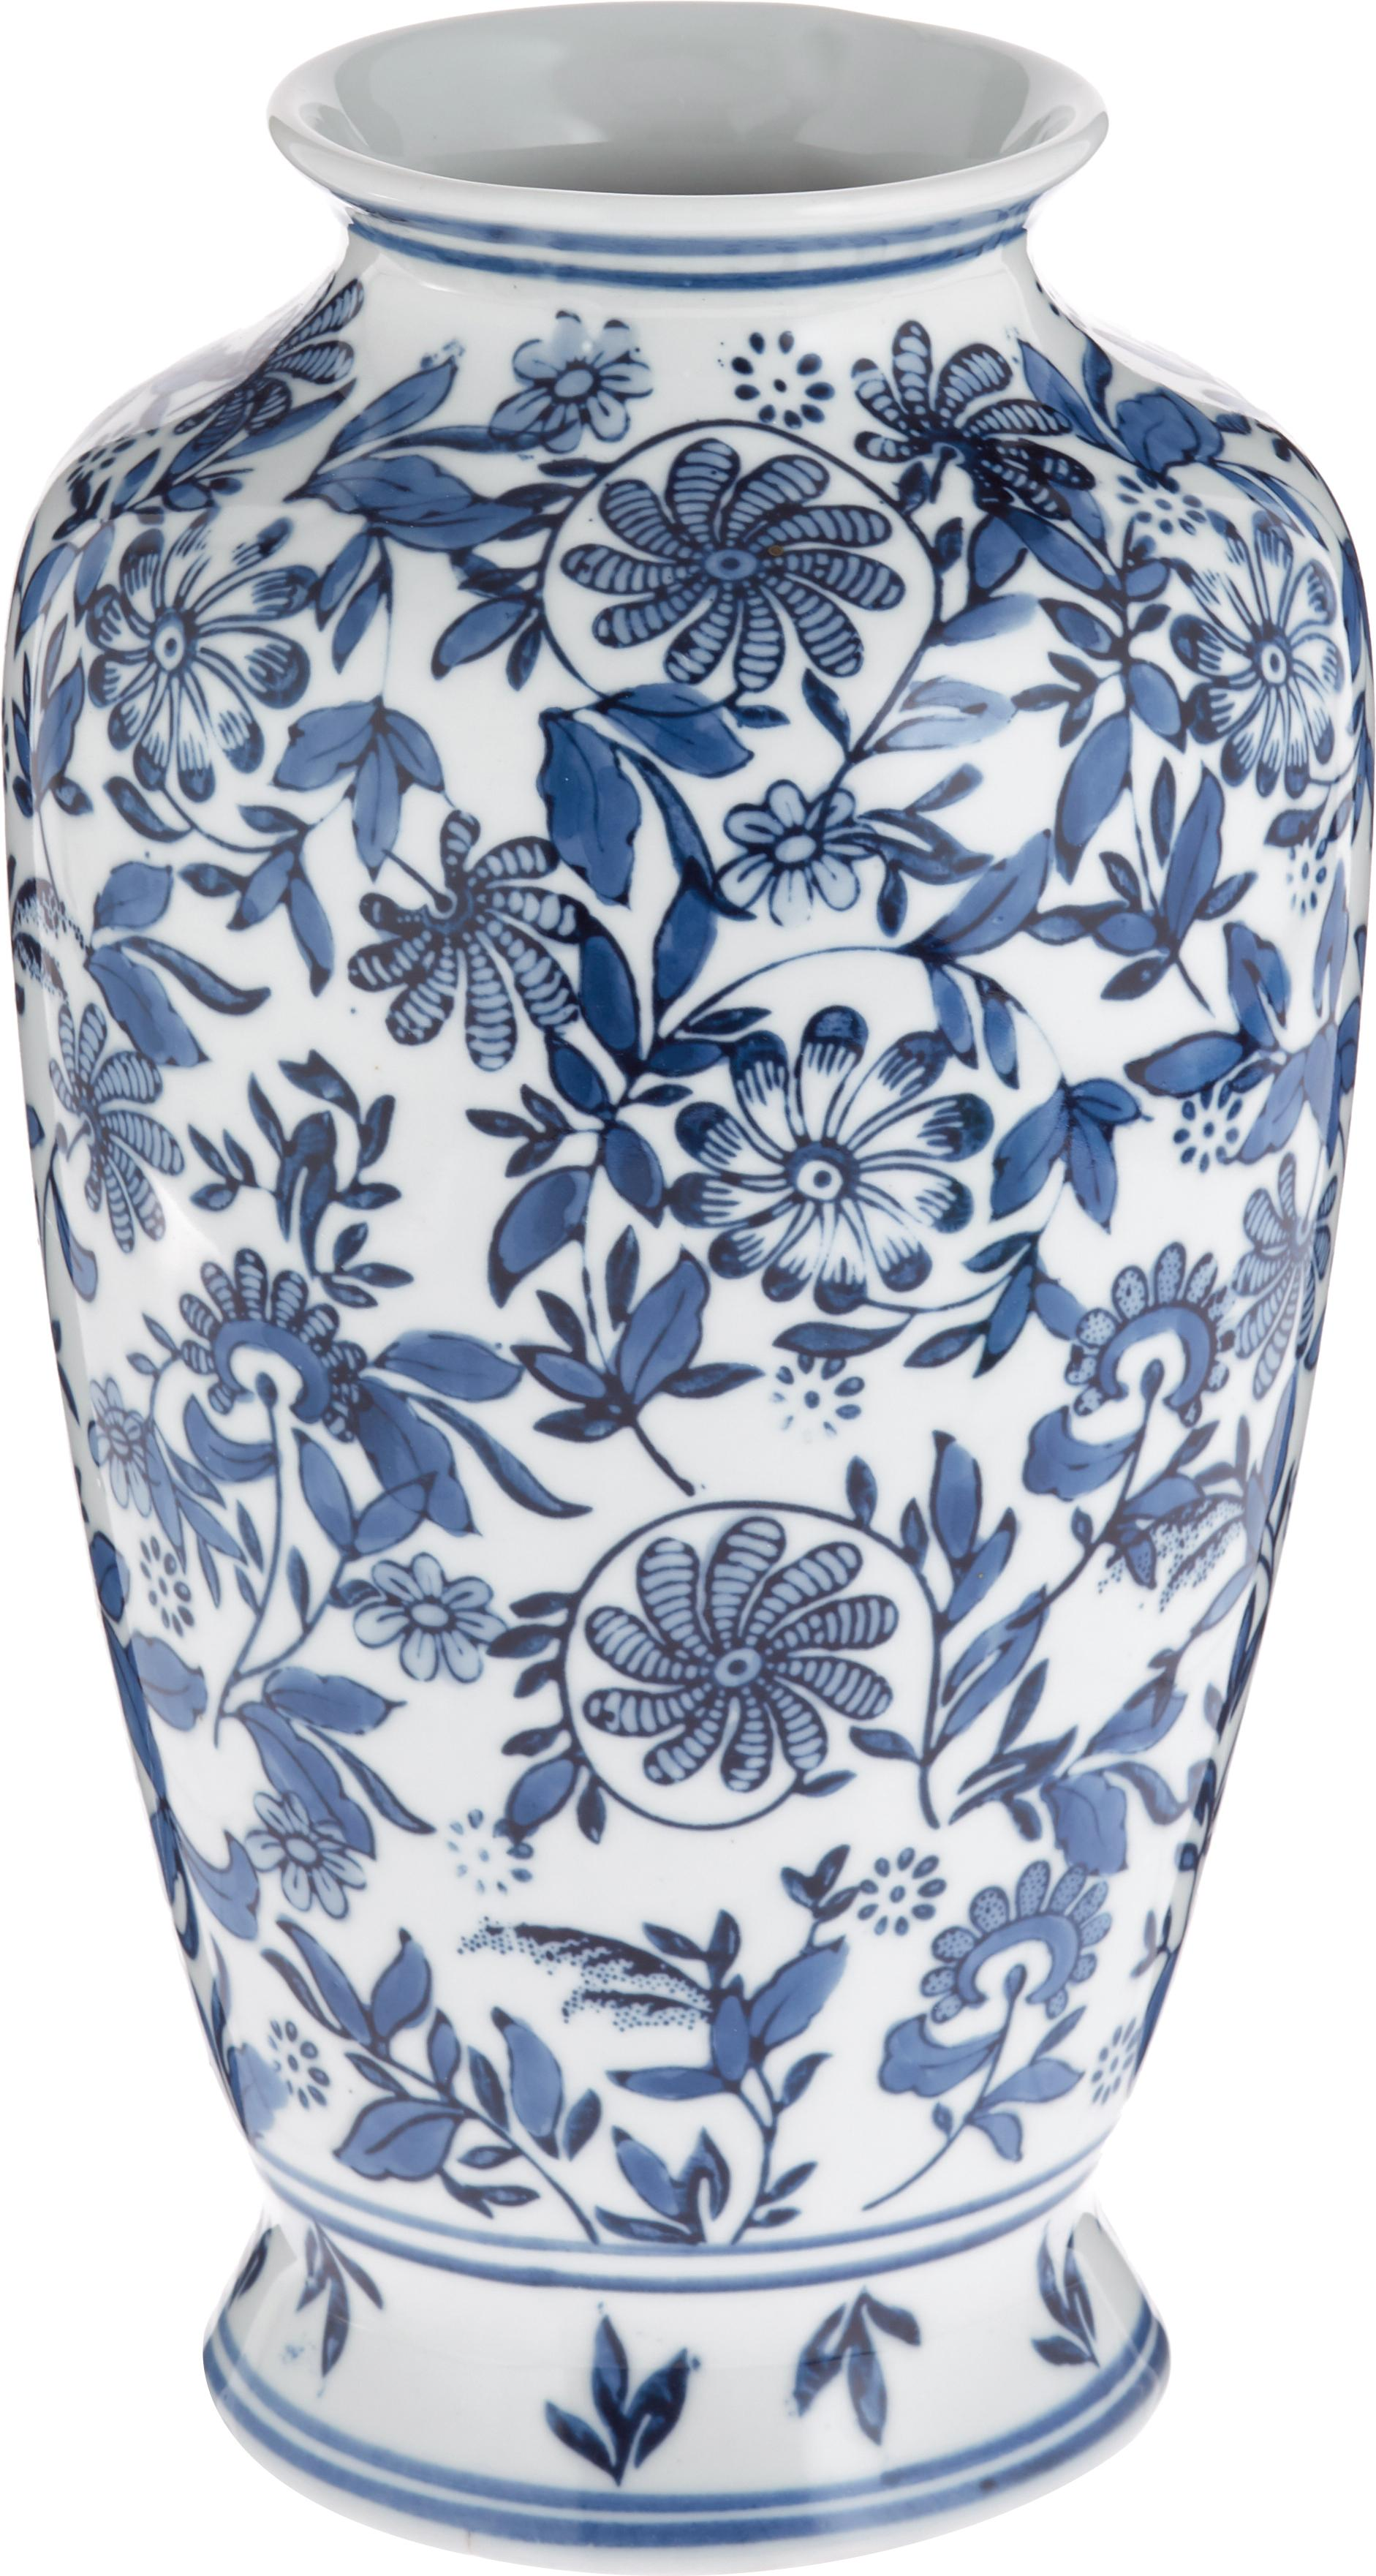 Vaso decorativo in porcellana Lin, Porcellana non impermeabile, Blu, bianco, Alt. 31 cm